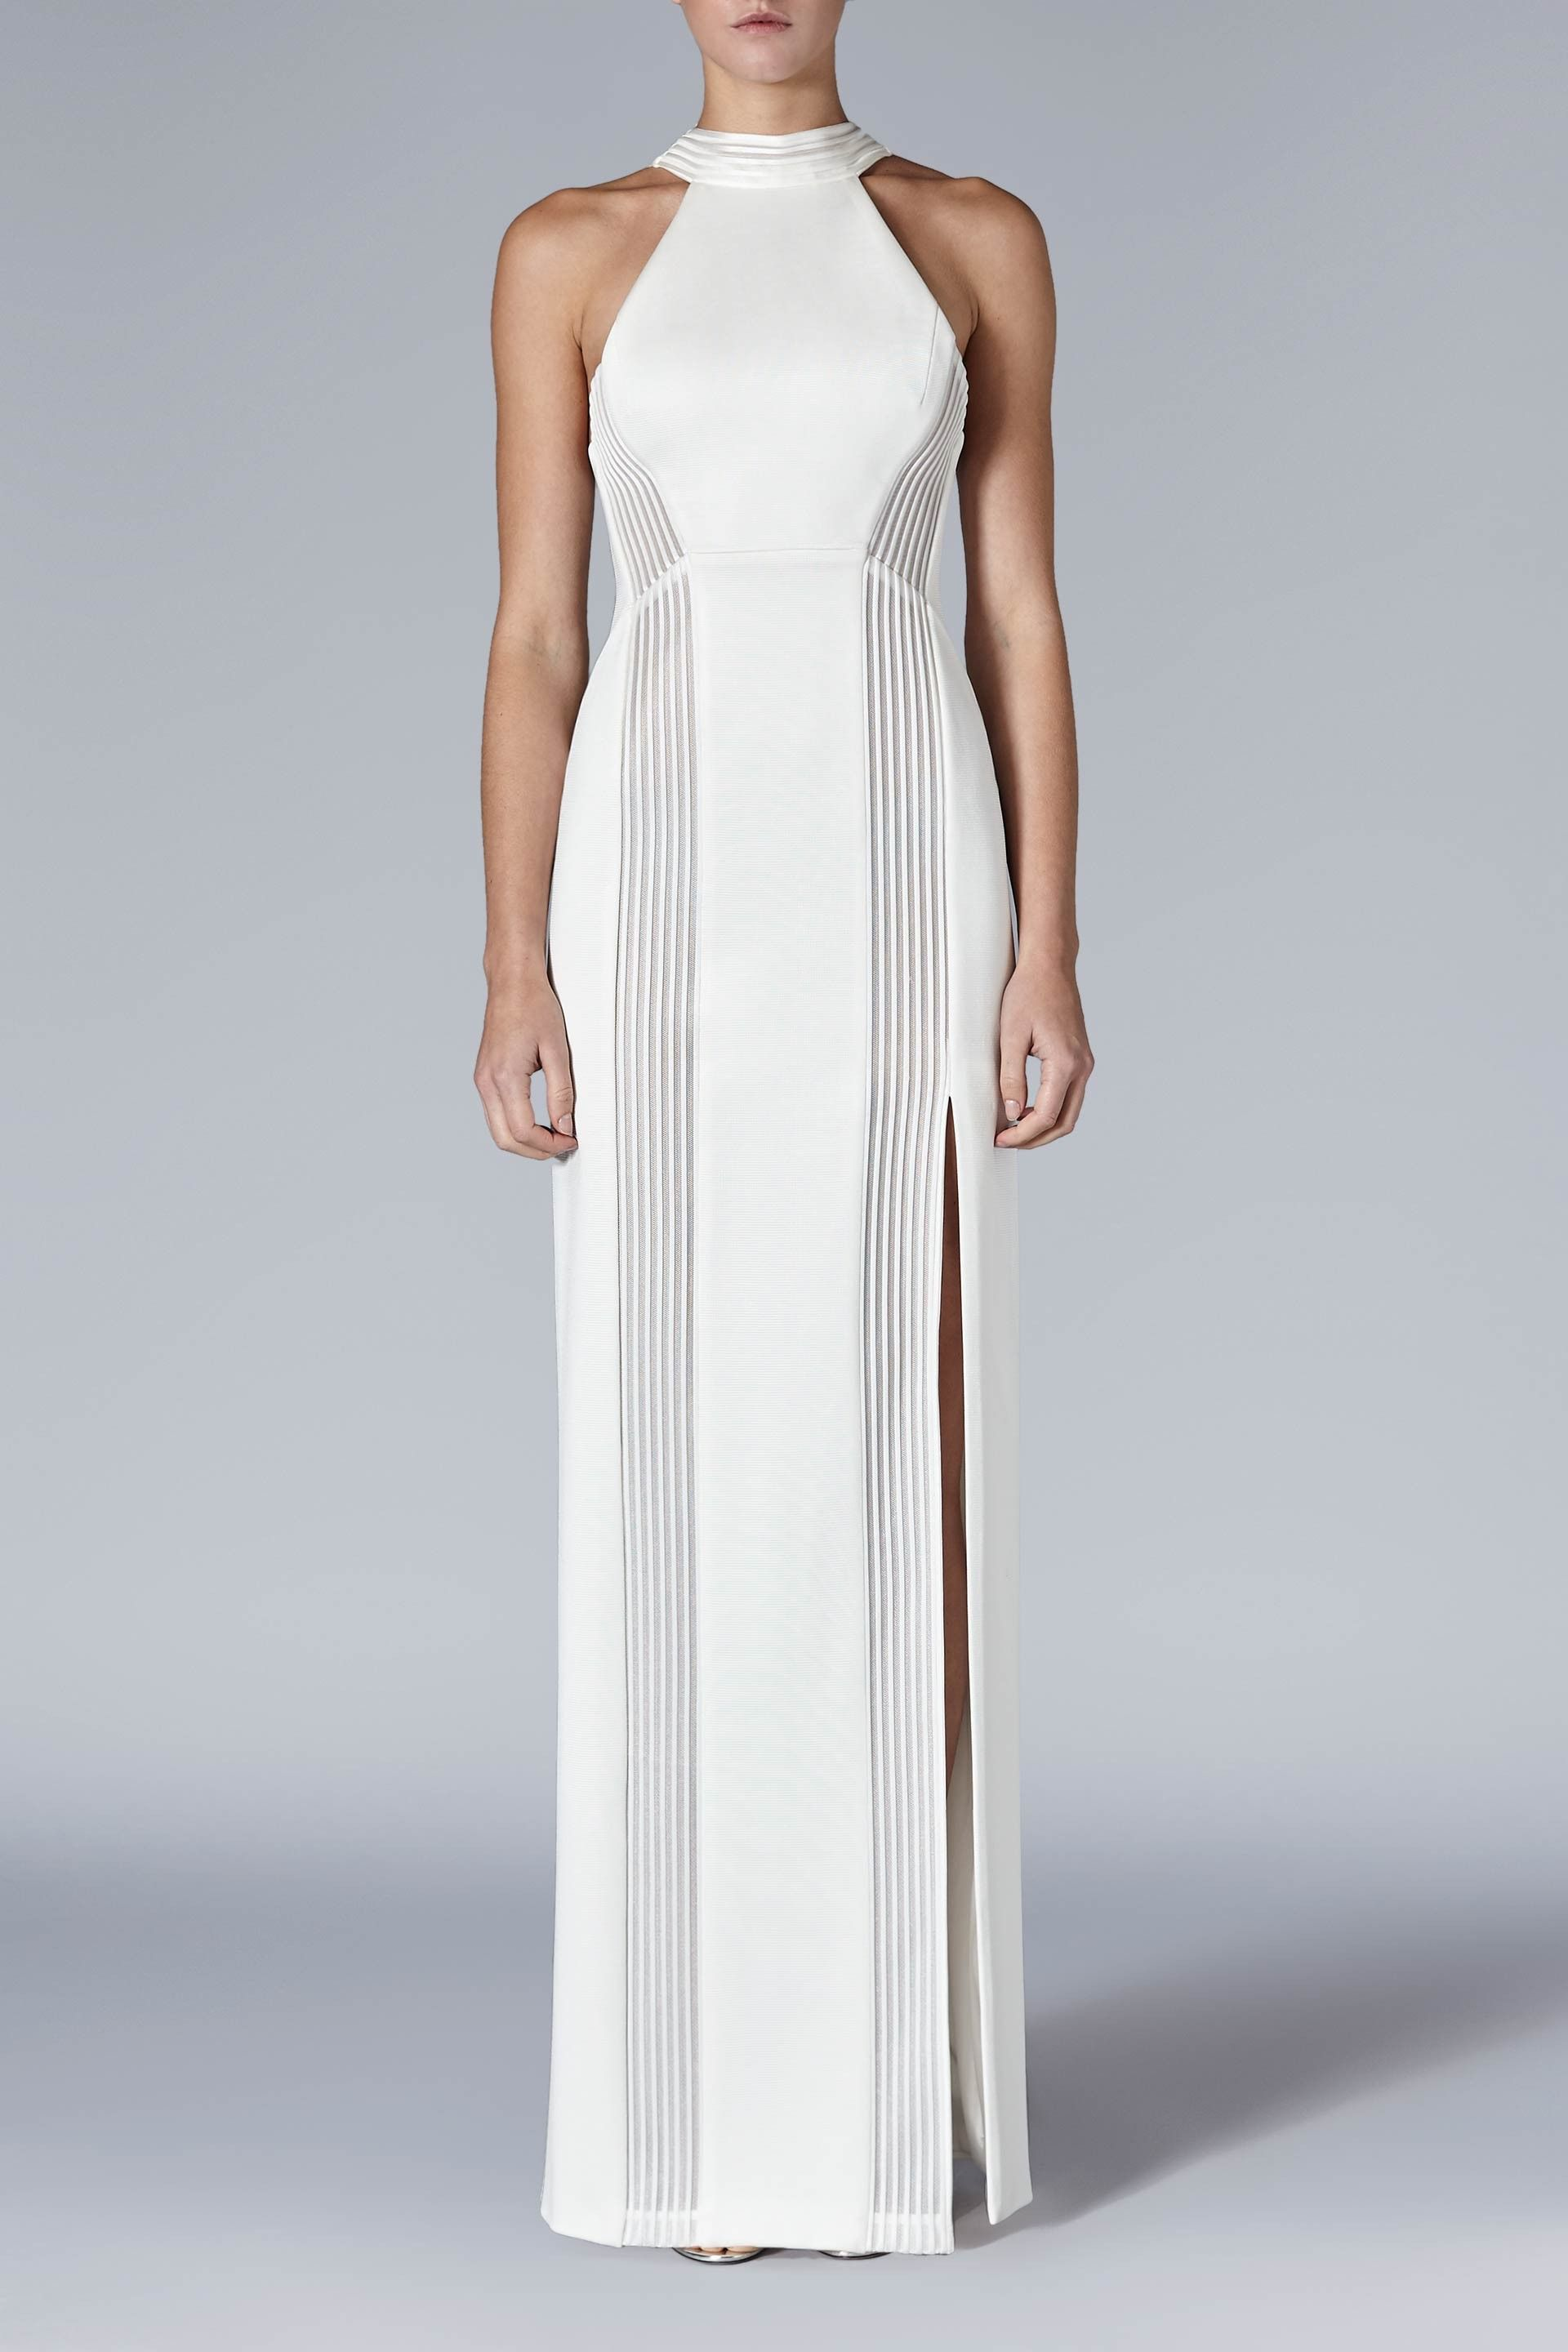 98919b83755 Palm Beach Dress - A statuesque dress with a classical feel, this modern  column dress creates a slim and sleek silhouette. Panels of stretch jersey  and ...